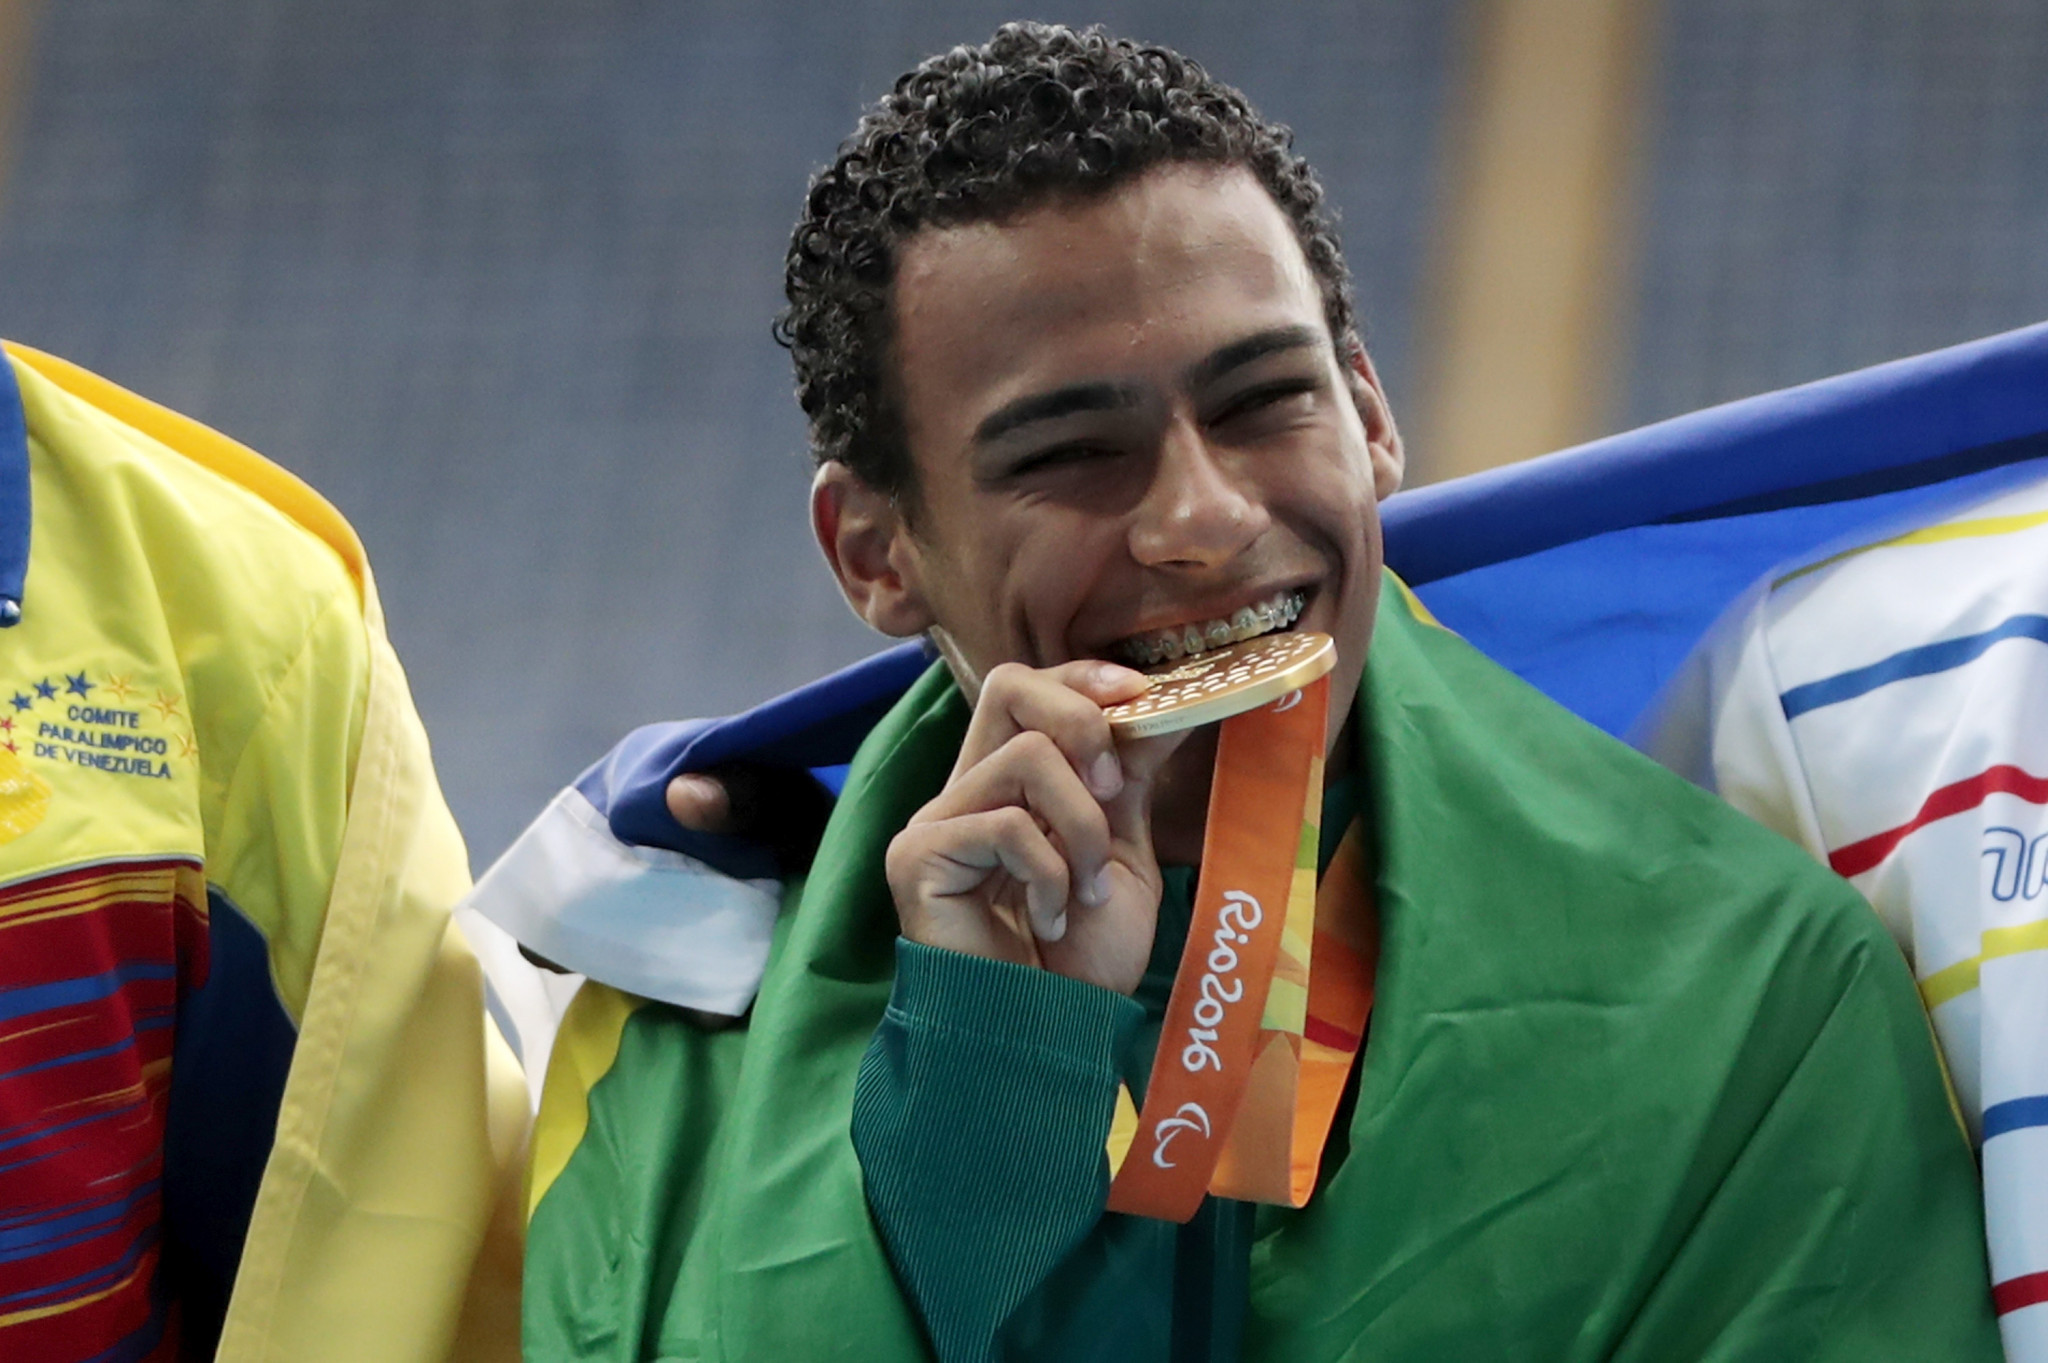 Brazilian runner Daniel Martins says the Global Games gave him the platform to win gold at Rio 2016 ©Getty Images